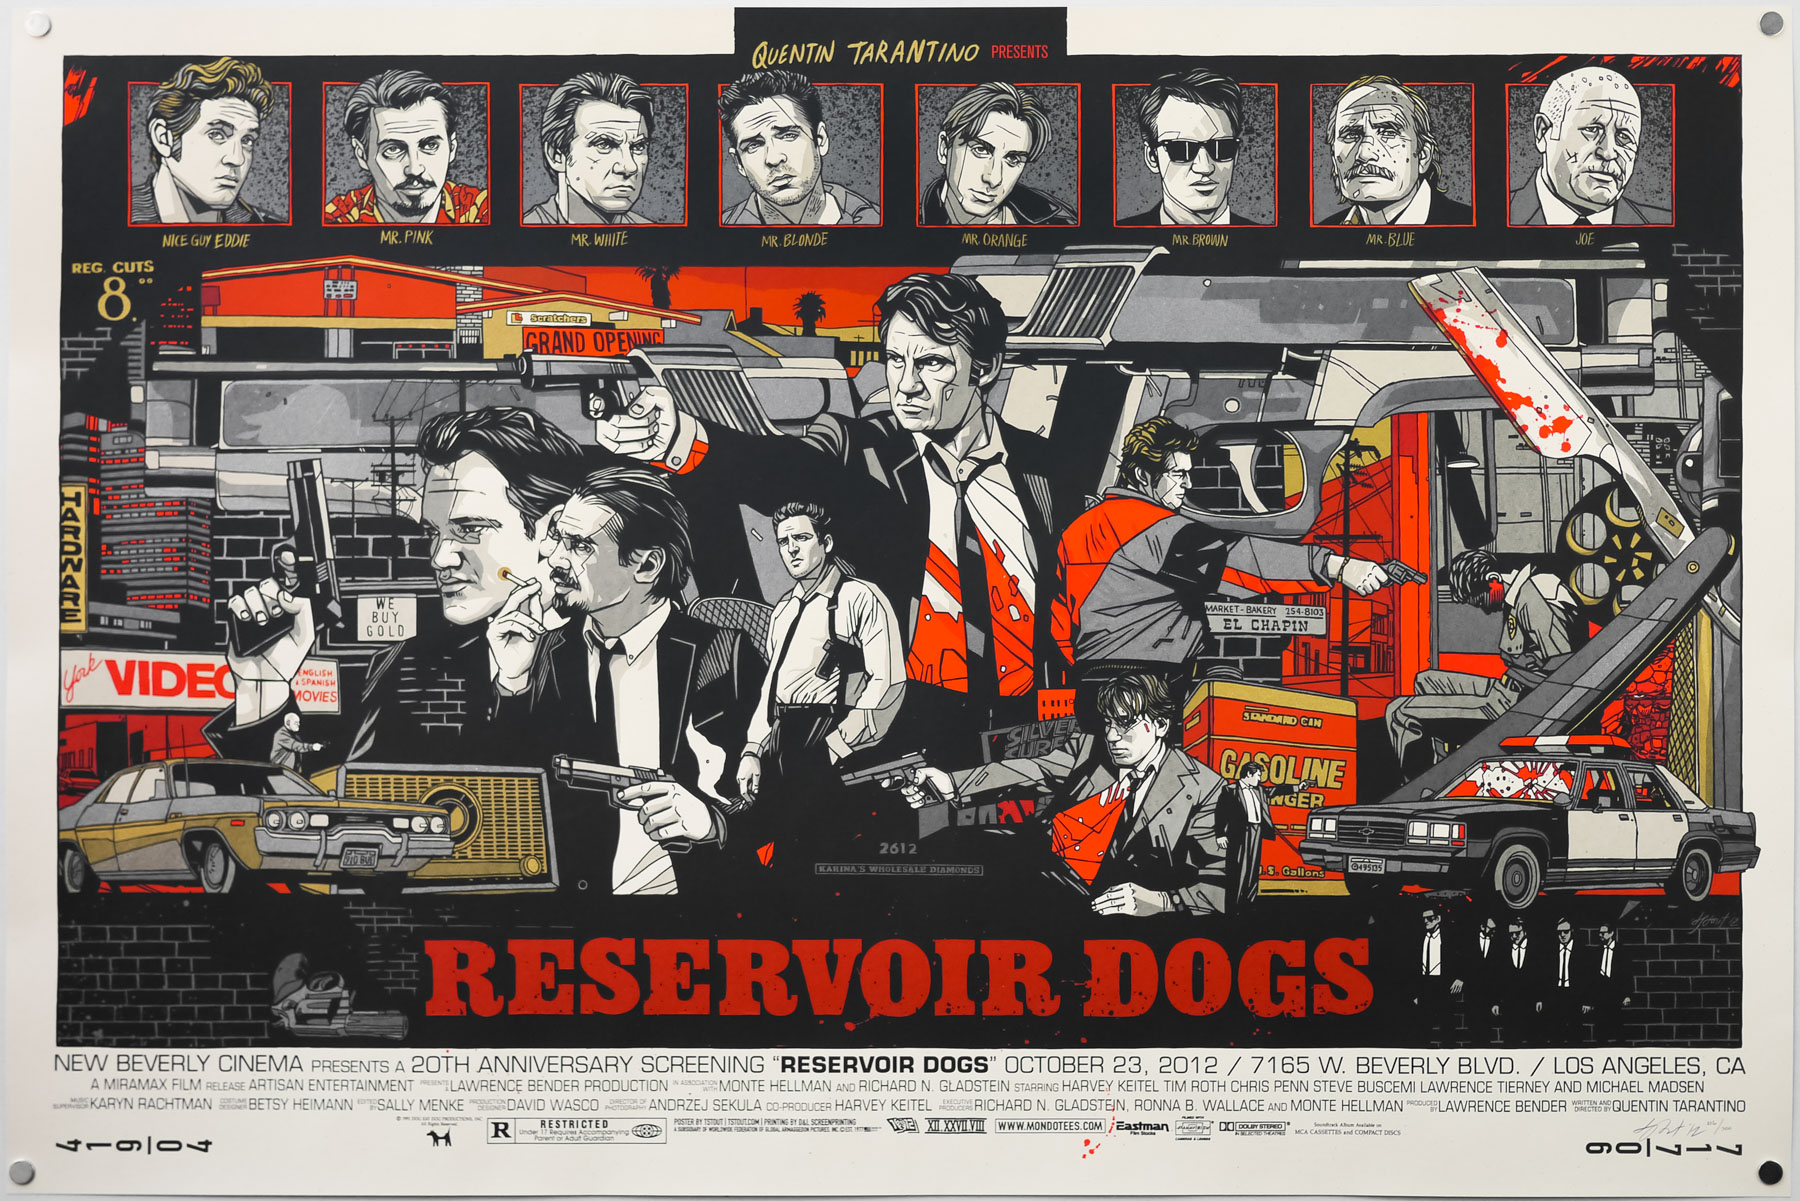 The regular style of Tyler Stout's screen print for Reservoir Dogs, created in 2012